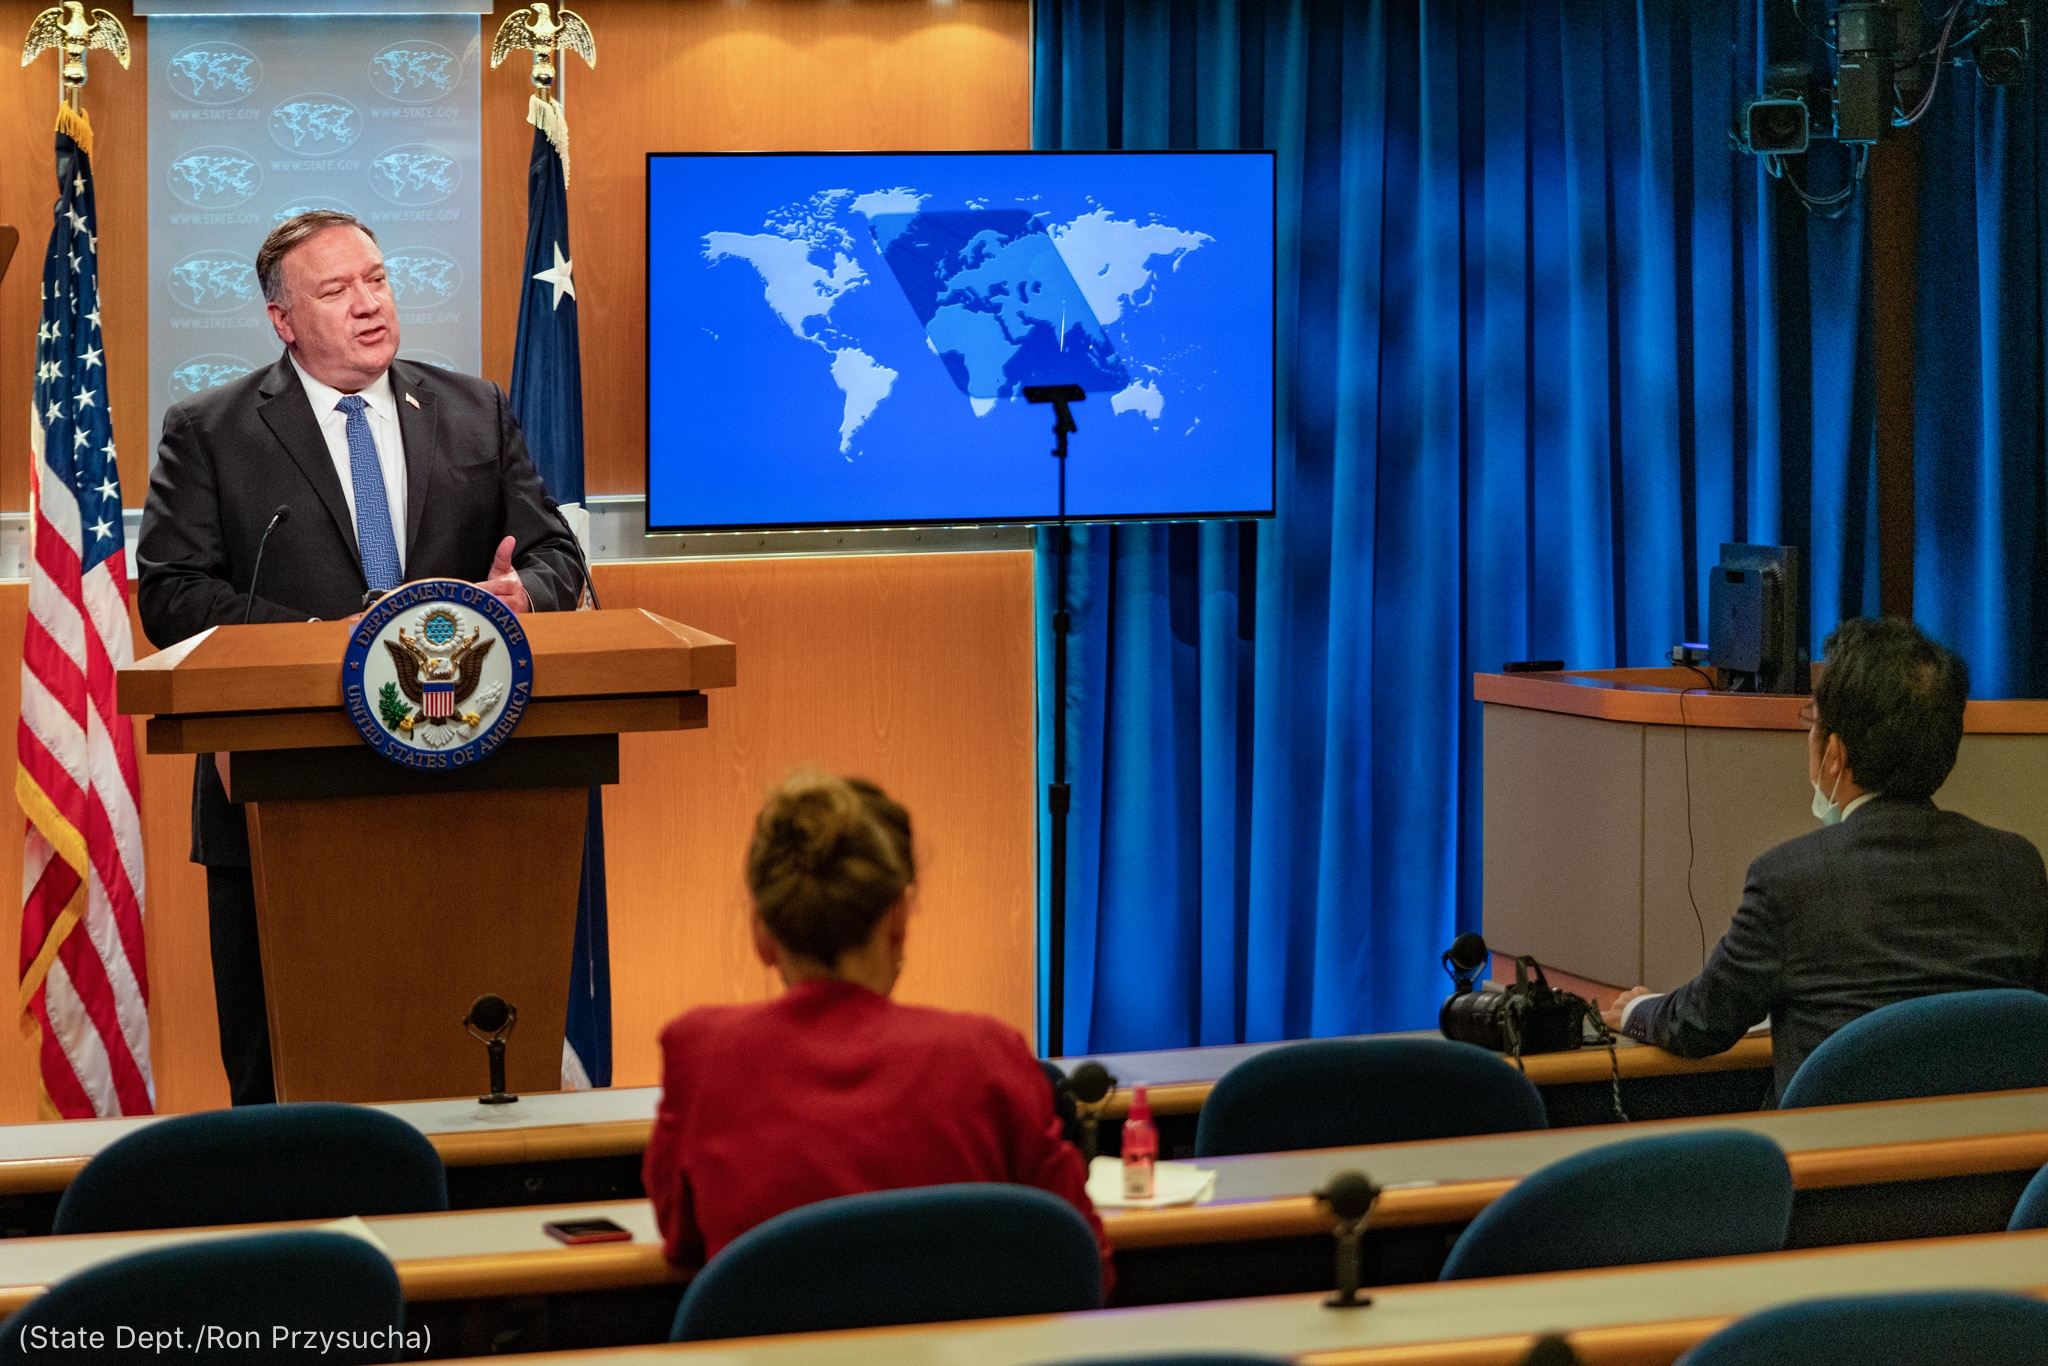 Michael R. Pompeo speaking behind lectern while two seated people listen (State Dept./Ron Przysucha)